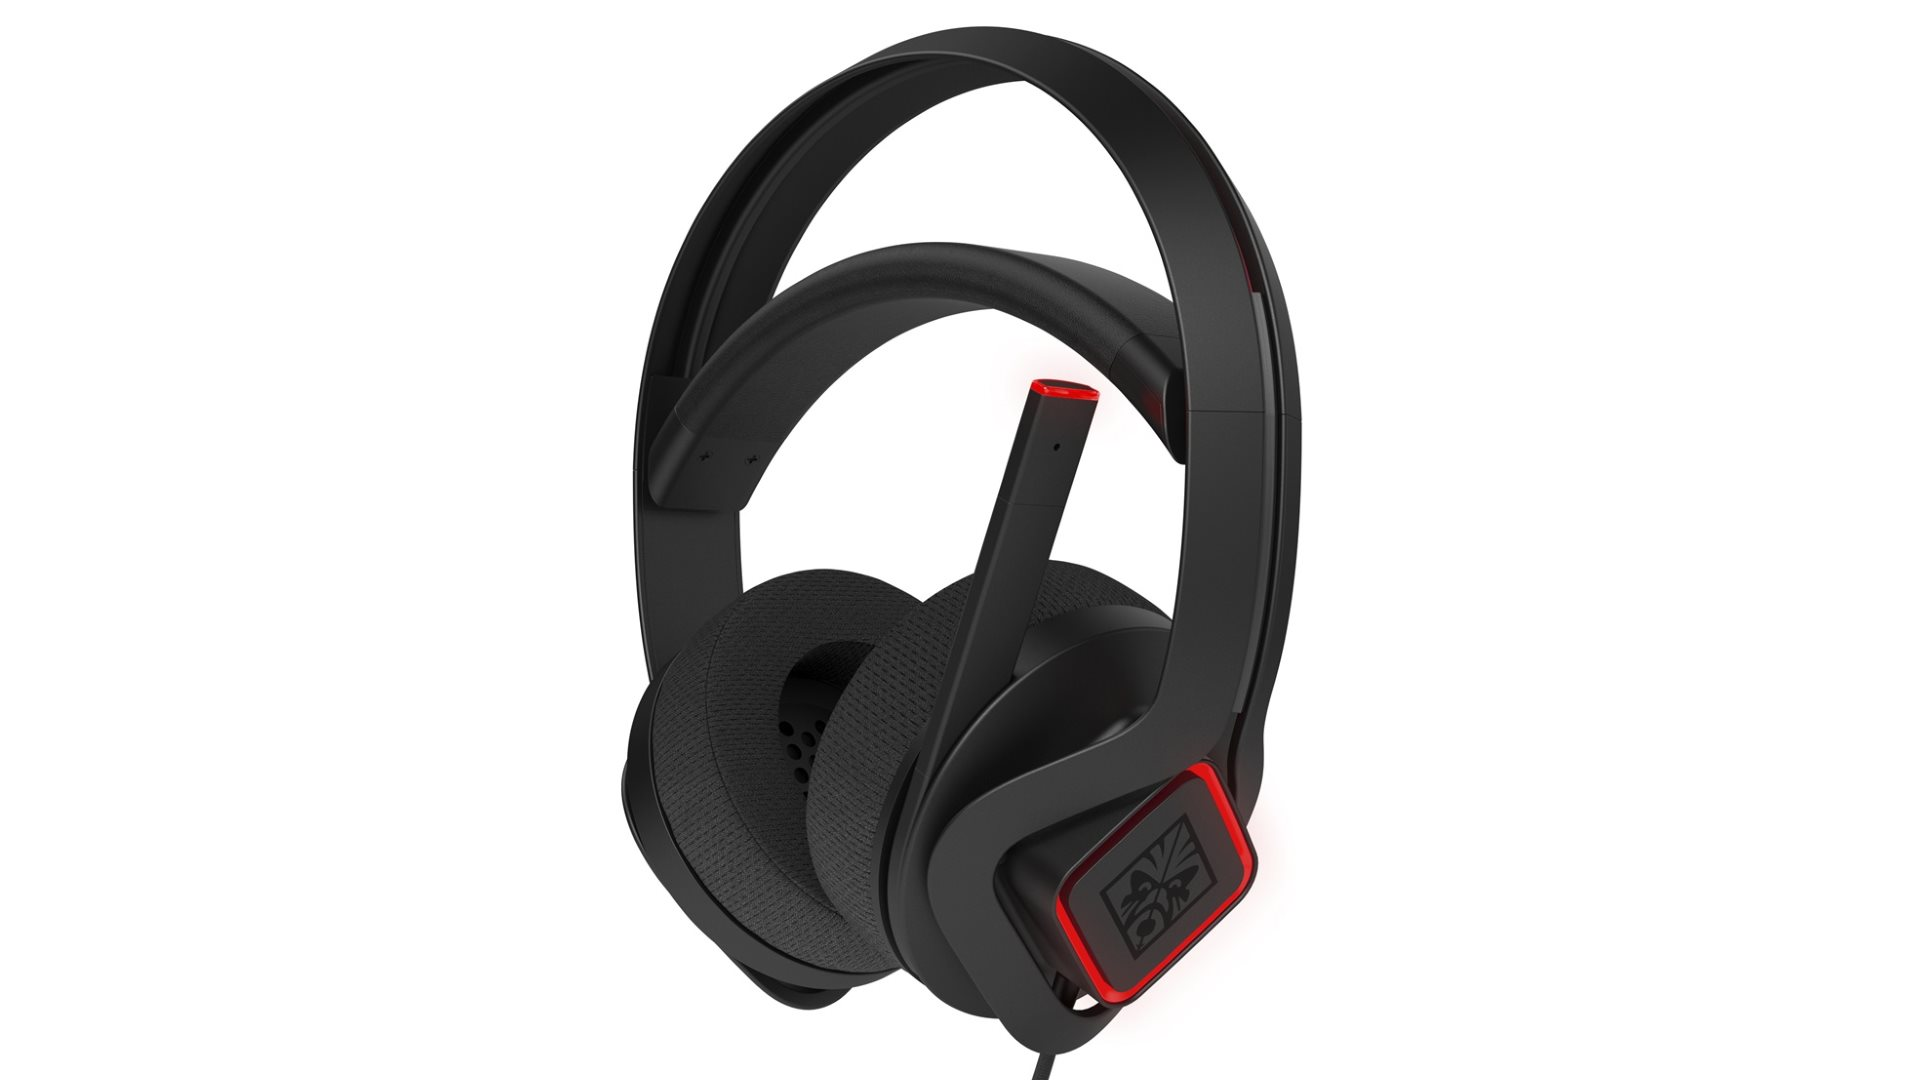 Omen Mindframe Review The Actively Cooled Gaming Headset